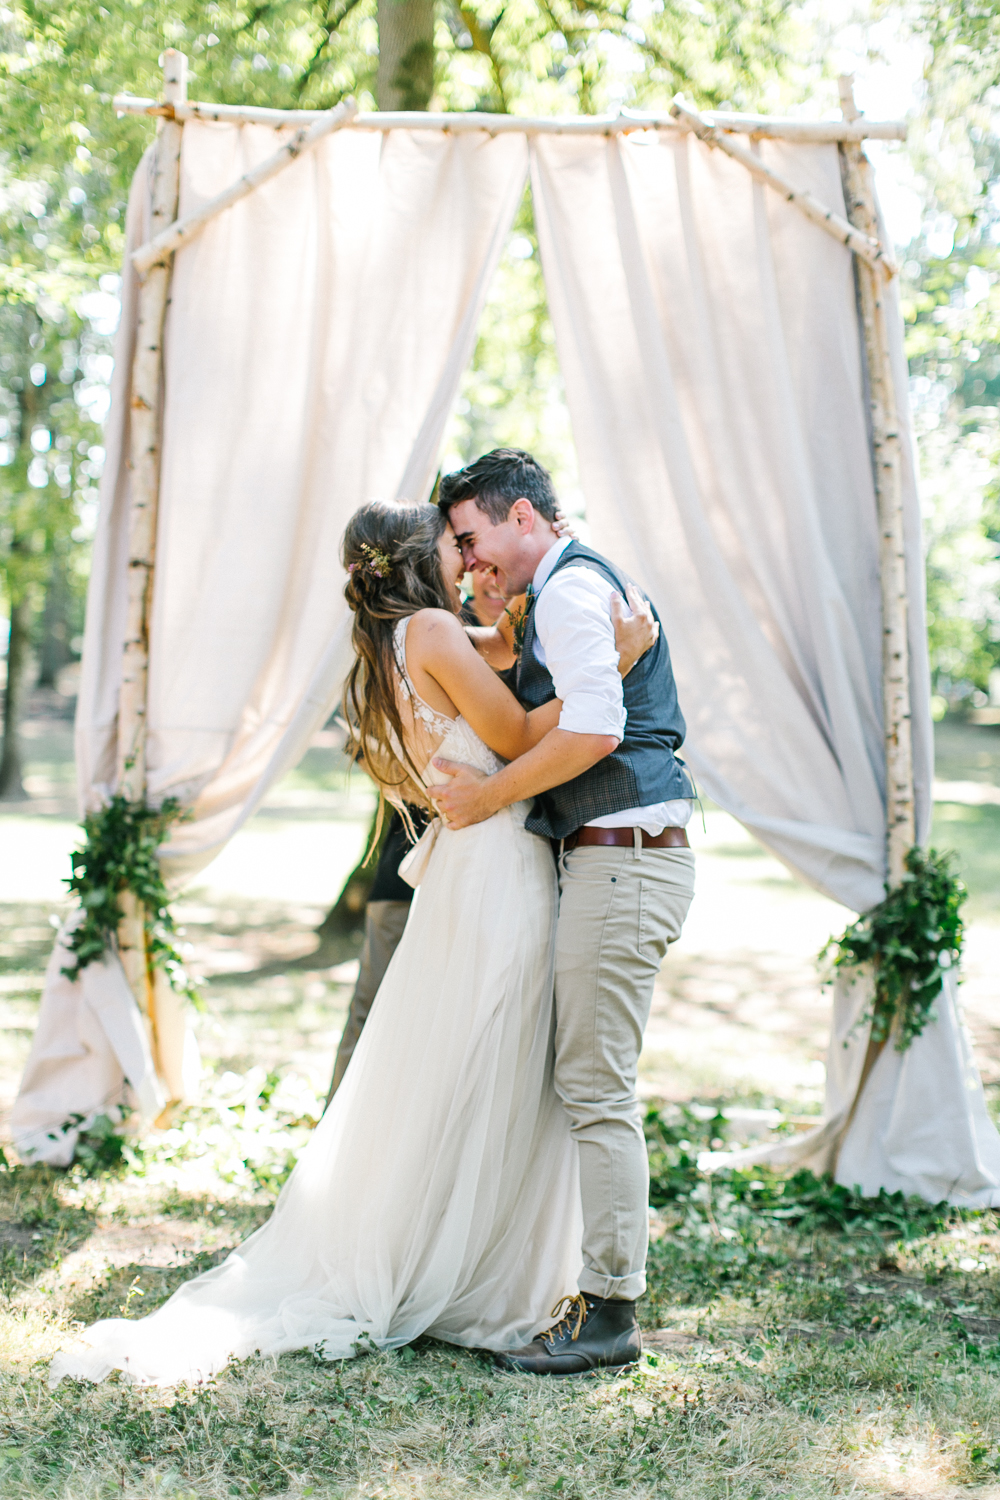 wedding ceremony - Rustic Oregon Summer Wedding from Maria Lamb Photography - marialamb.co